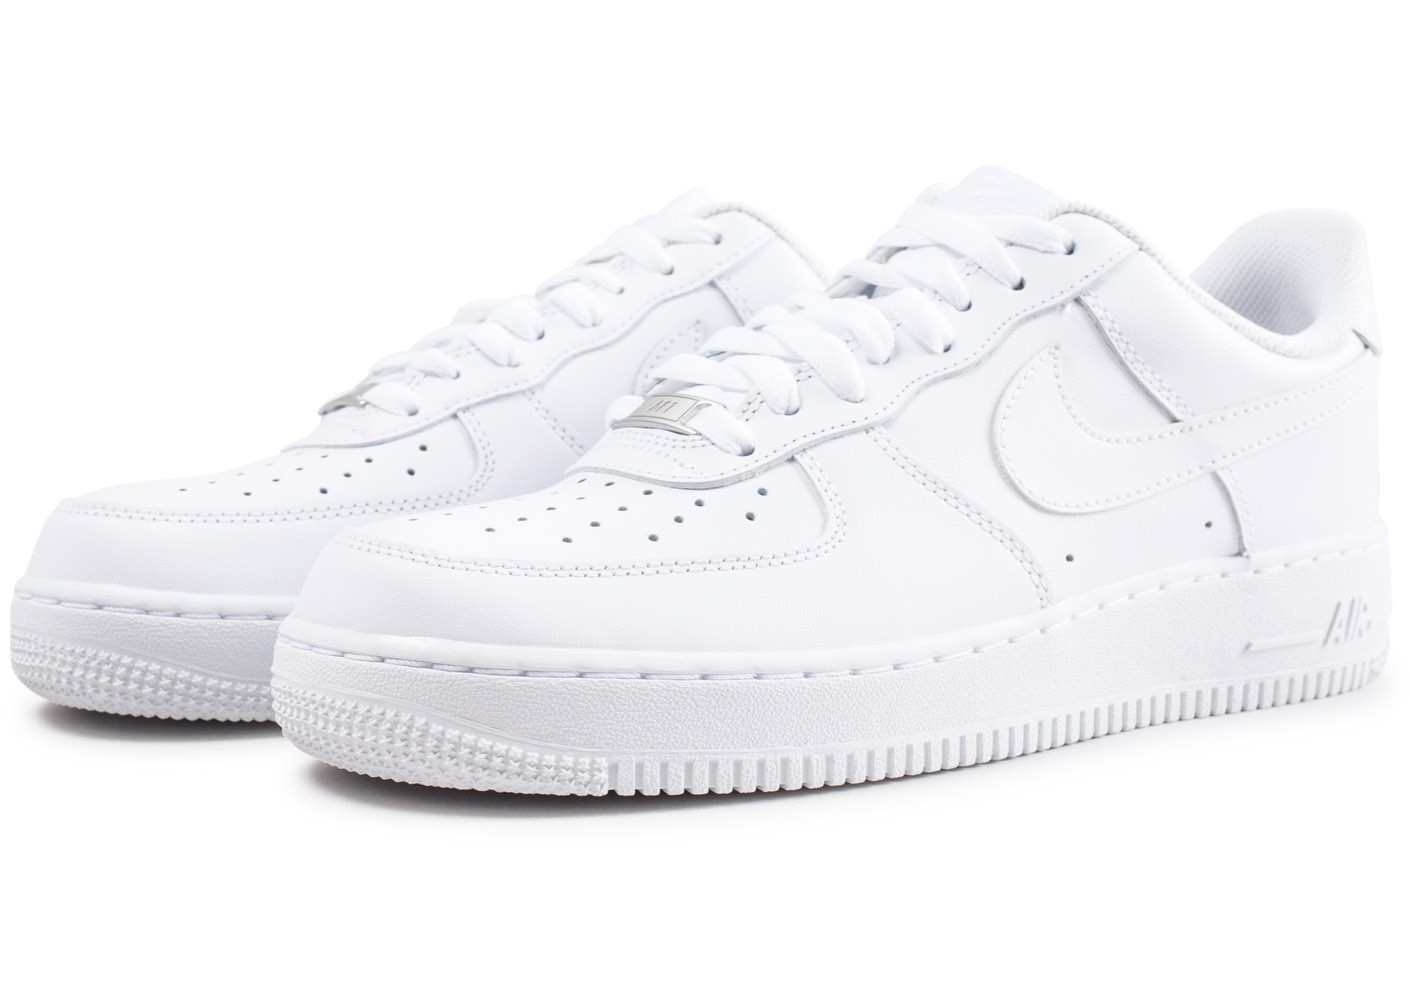 Nike Air Force 1 Blanche - Chaussures Baskets homme - Snaidero-usa